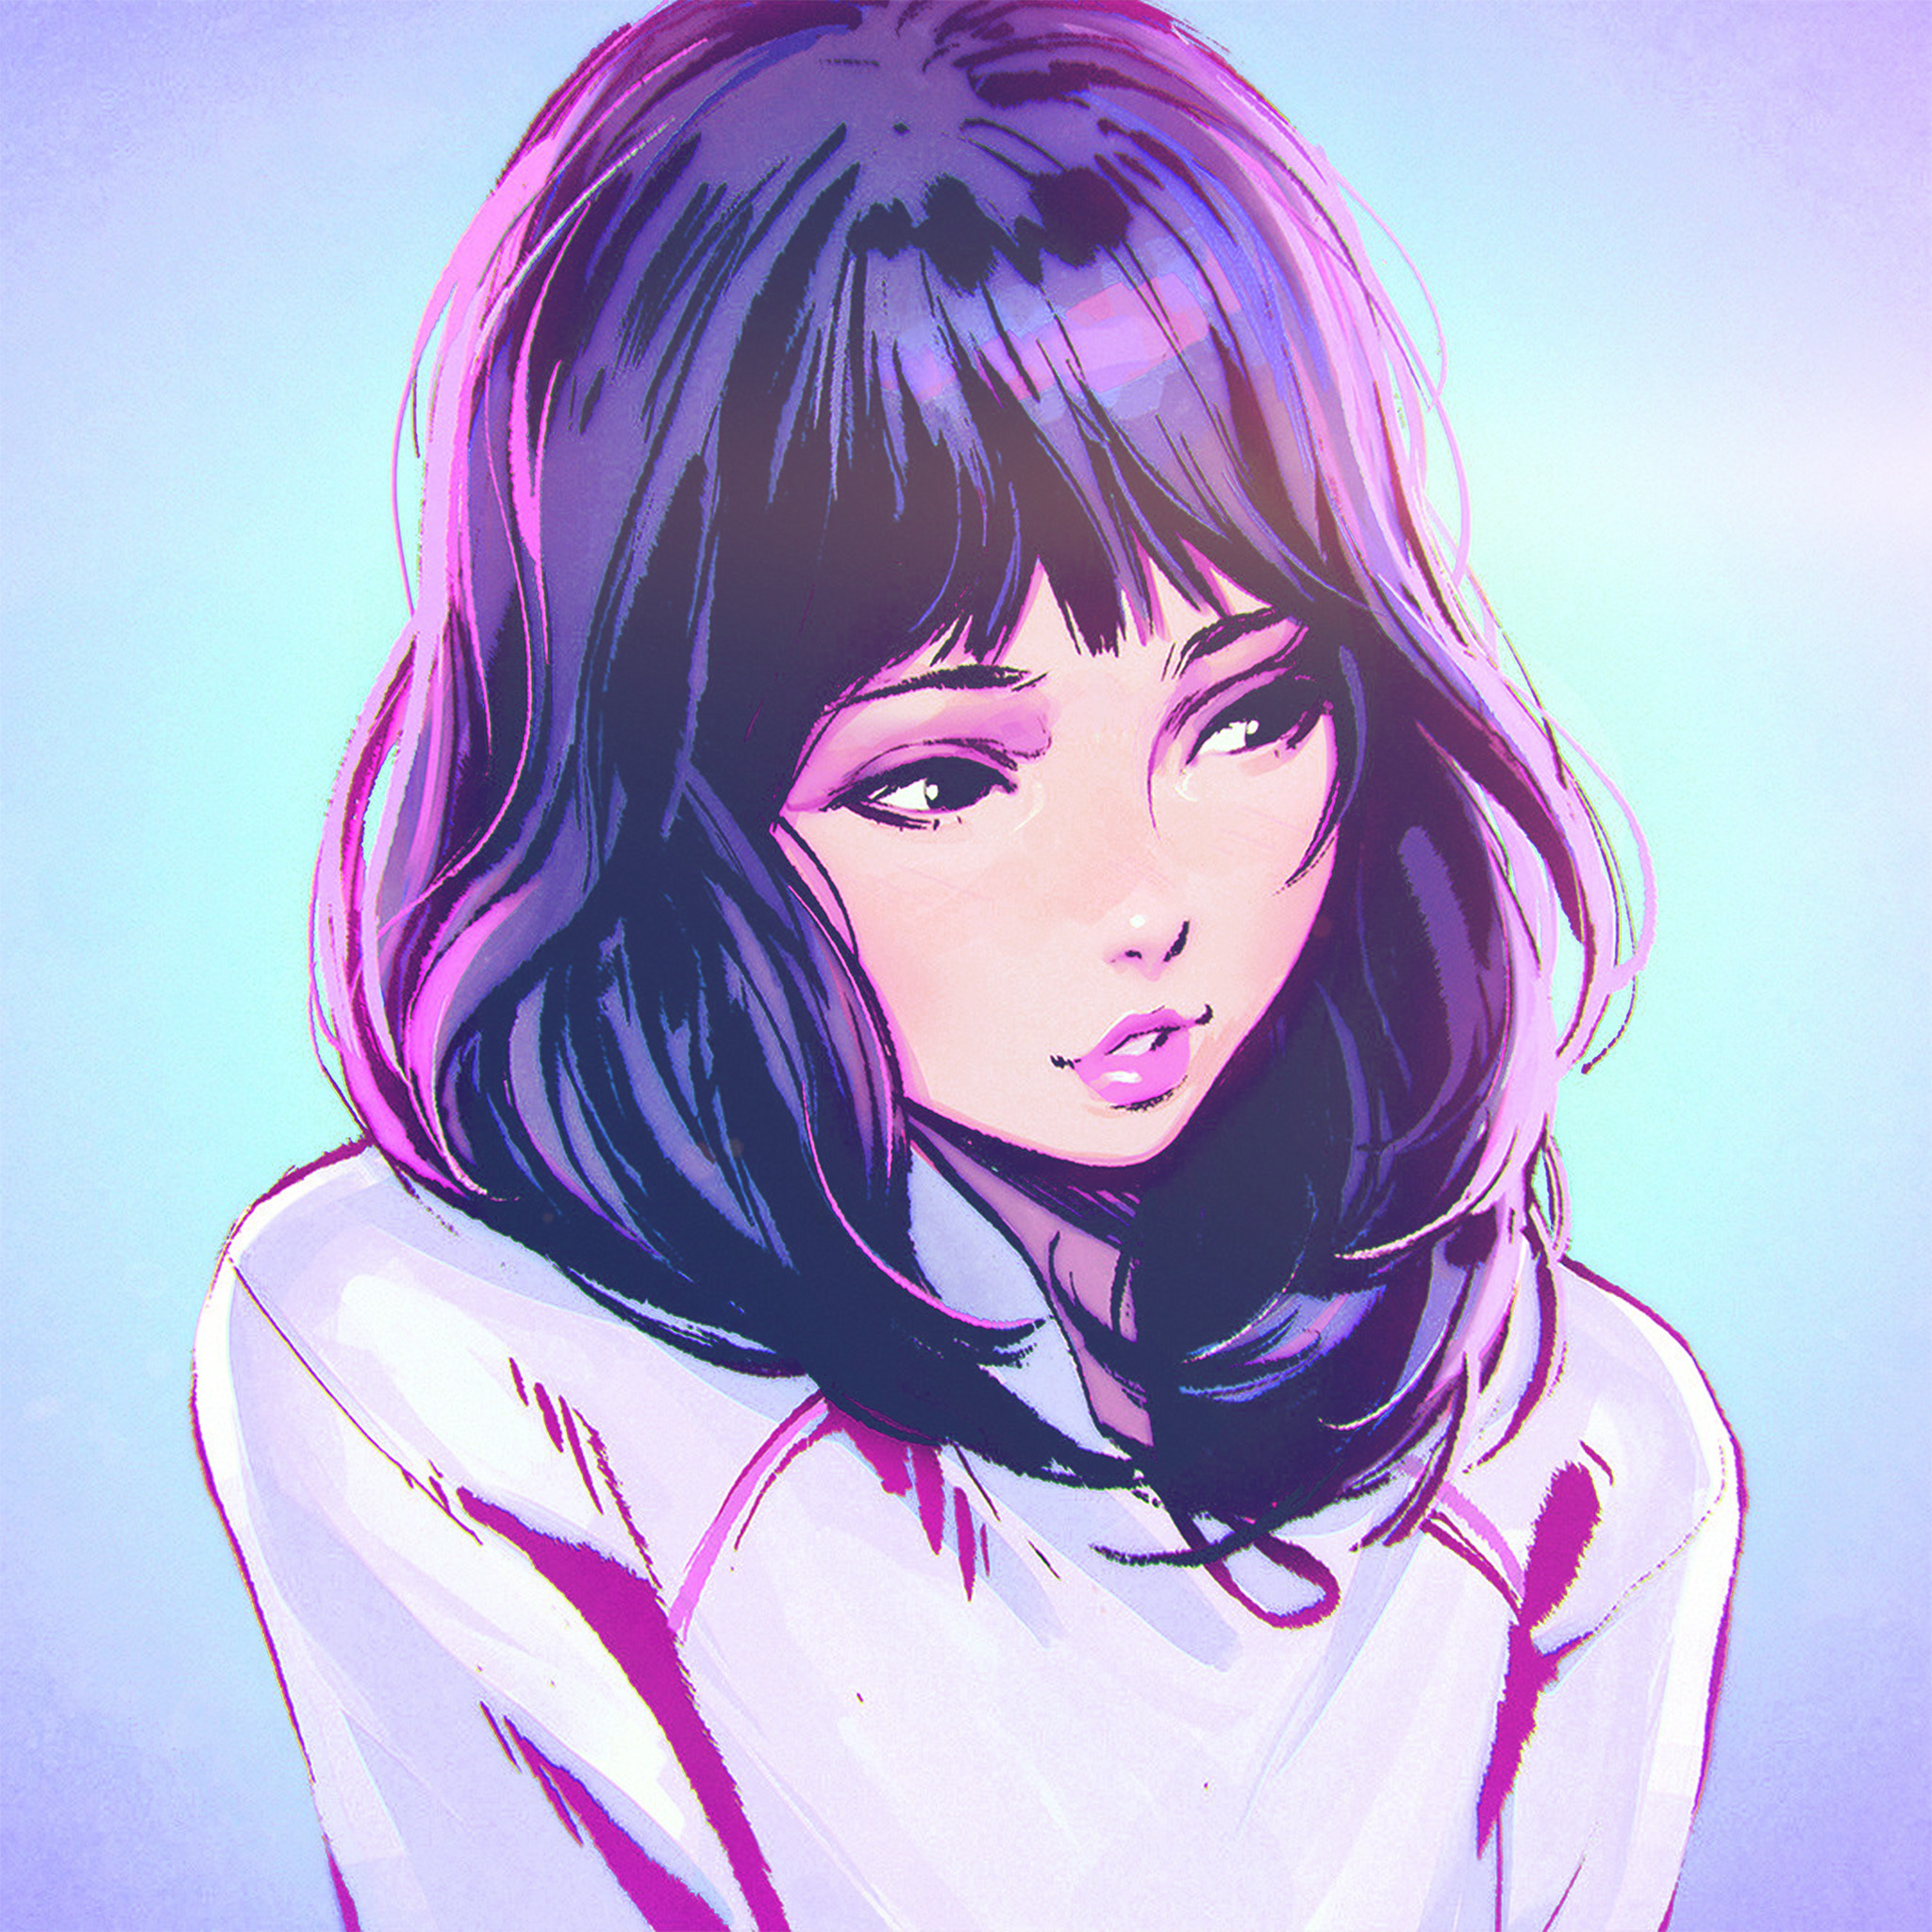 Abstract Girl Face Wallpaper Aw58 Ilya Kuvshinov Girl Blue Face Illustration Art Wallpaper